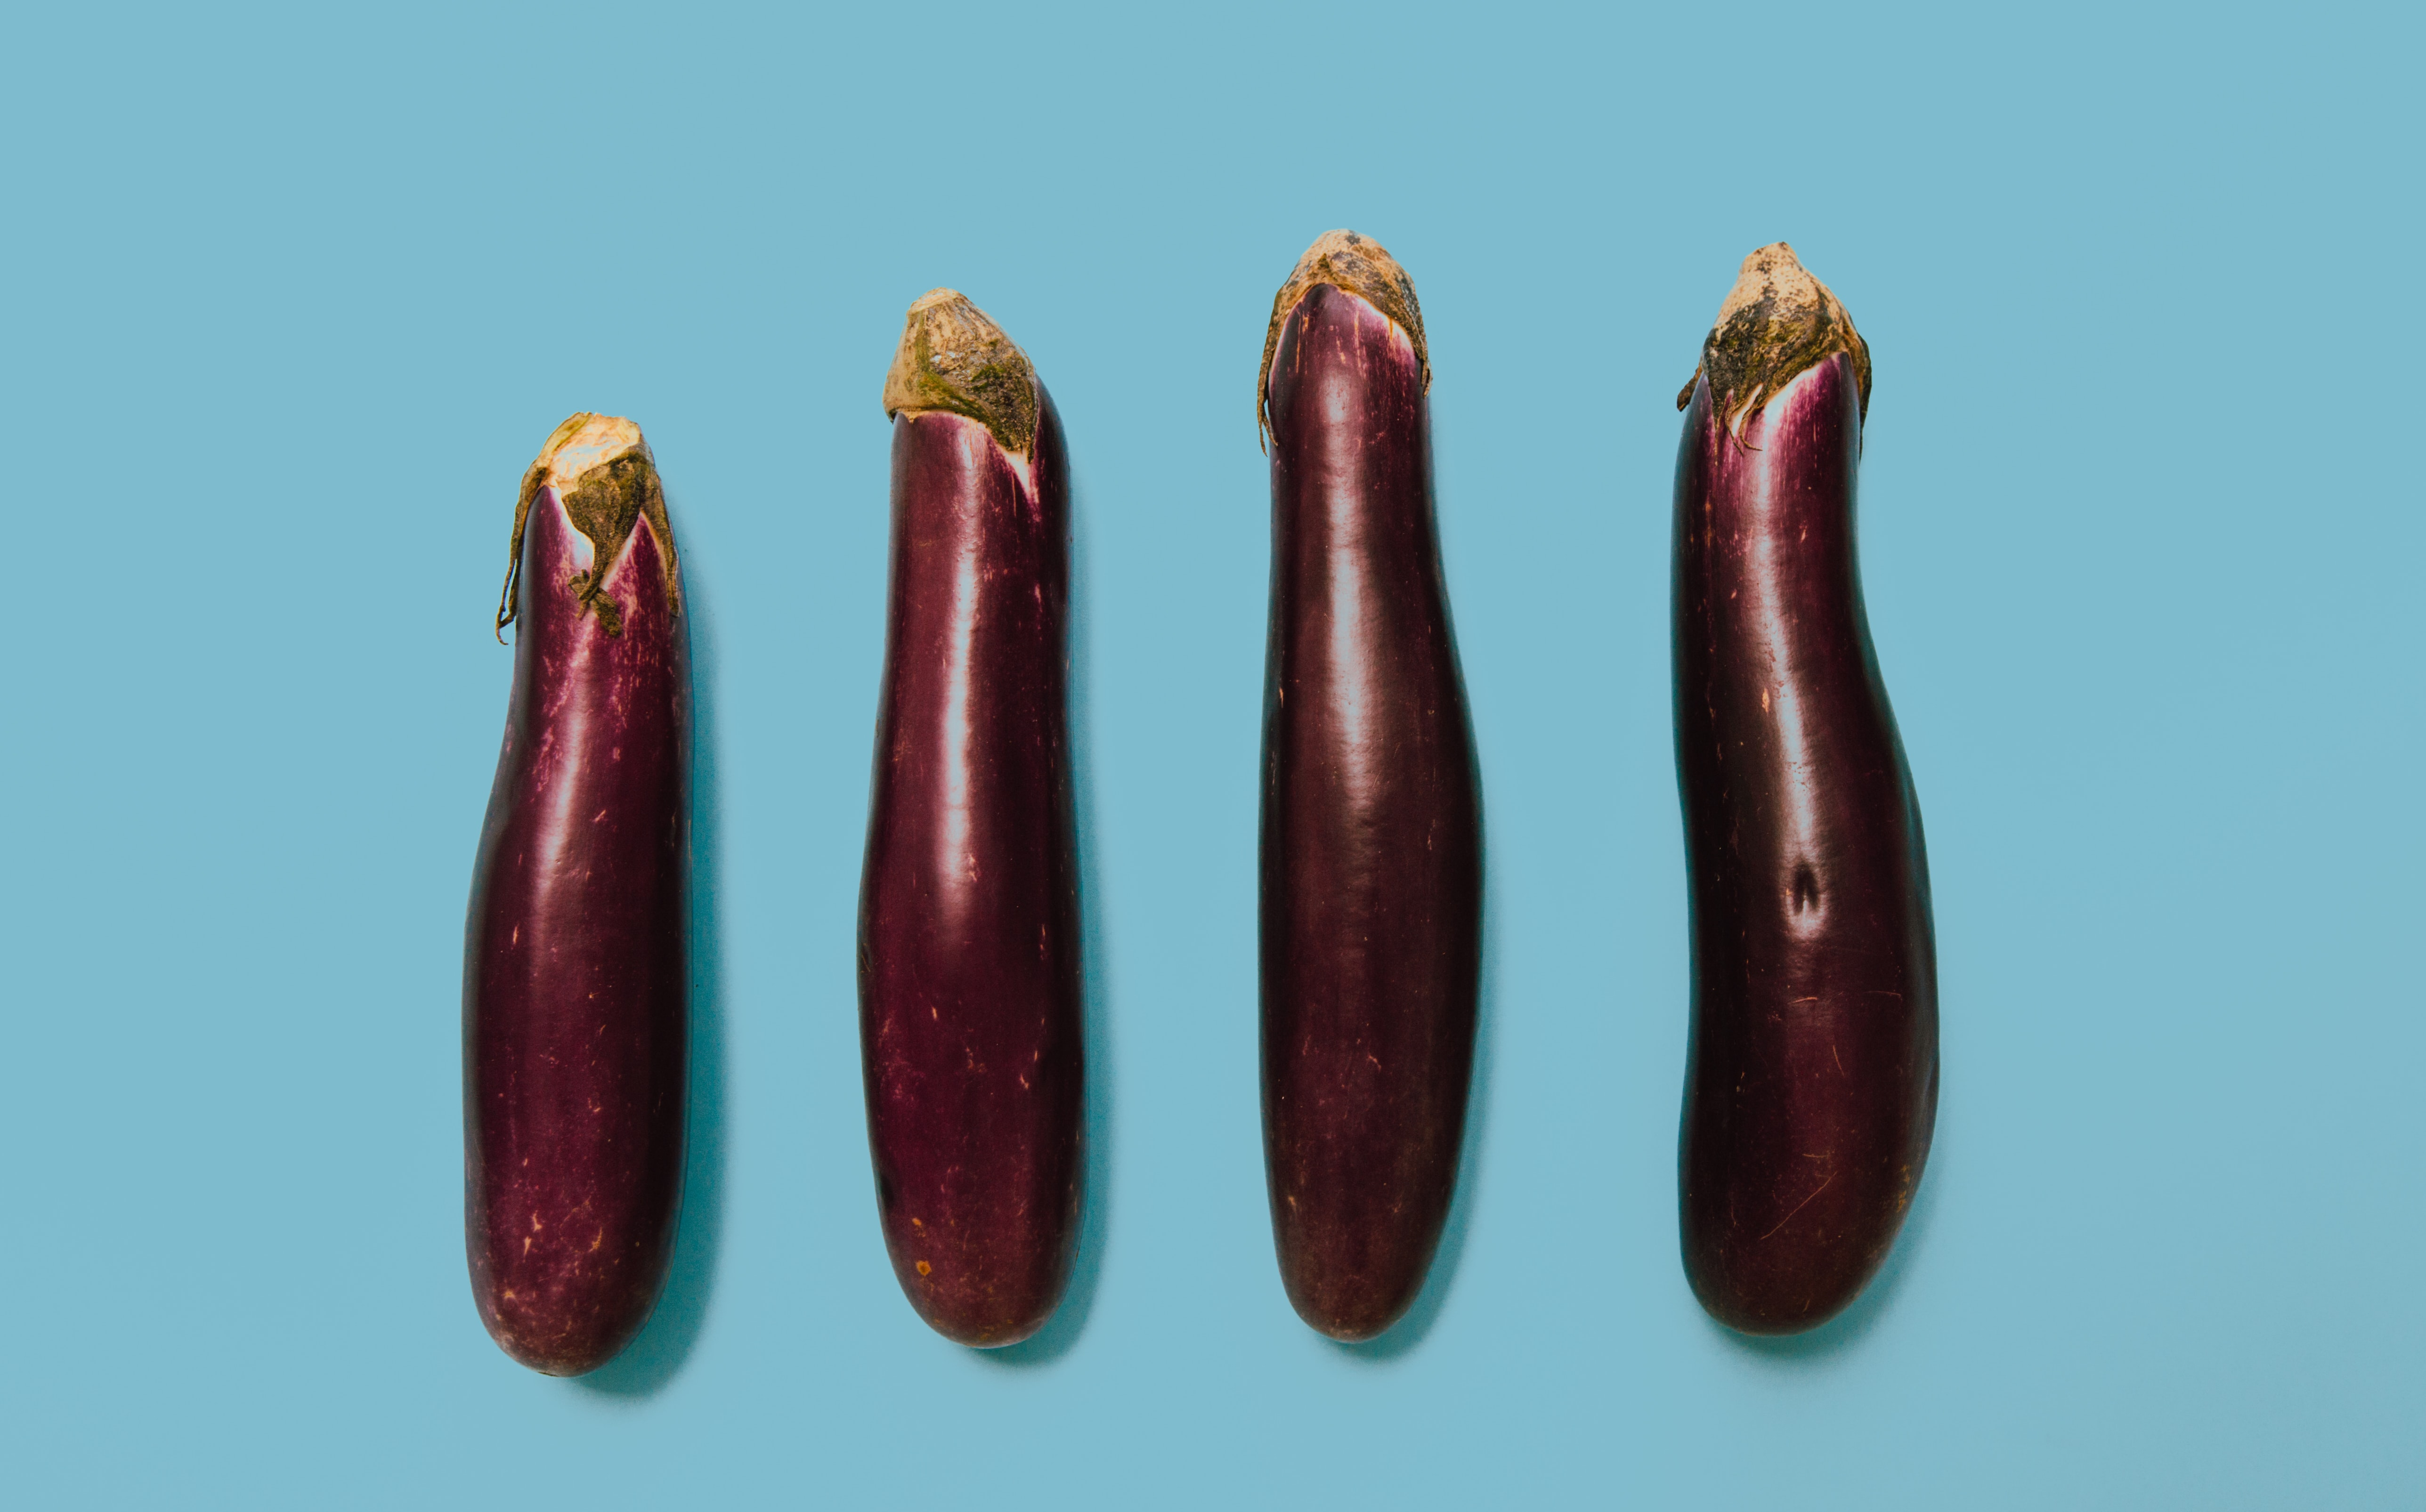 flat lay photography of four purple eggplants